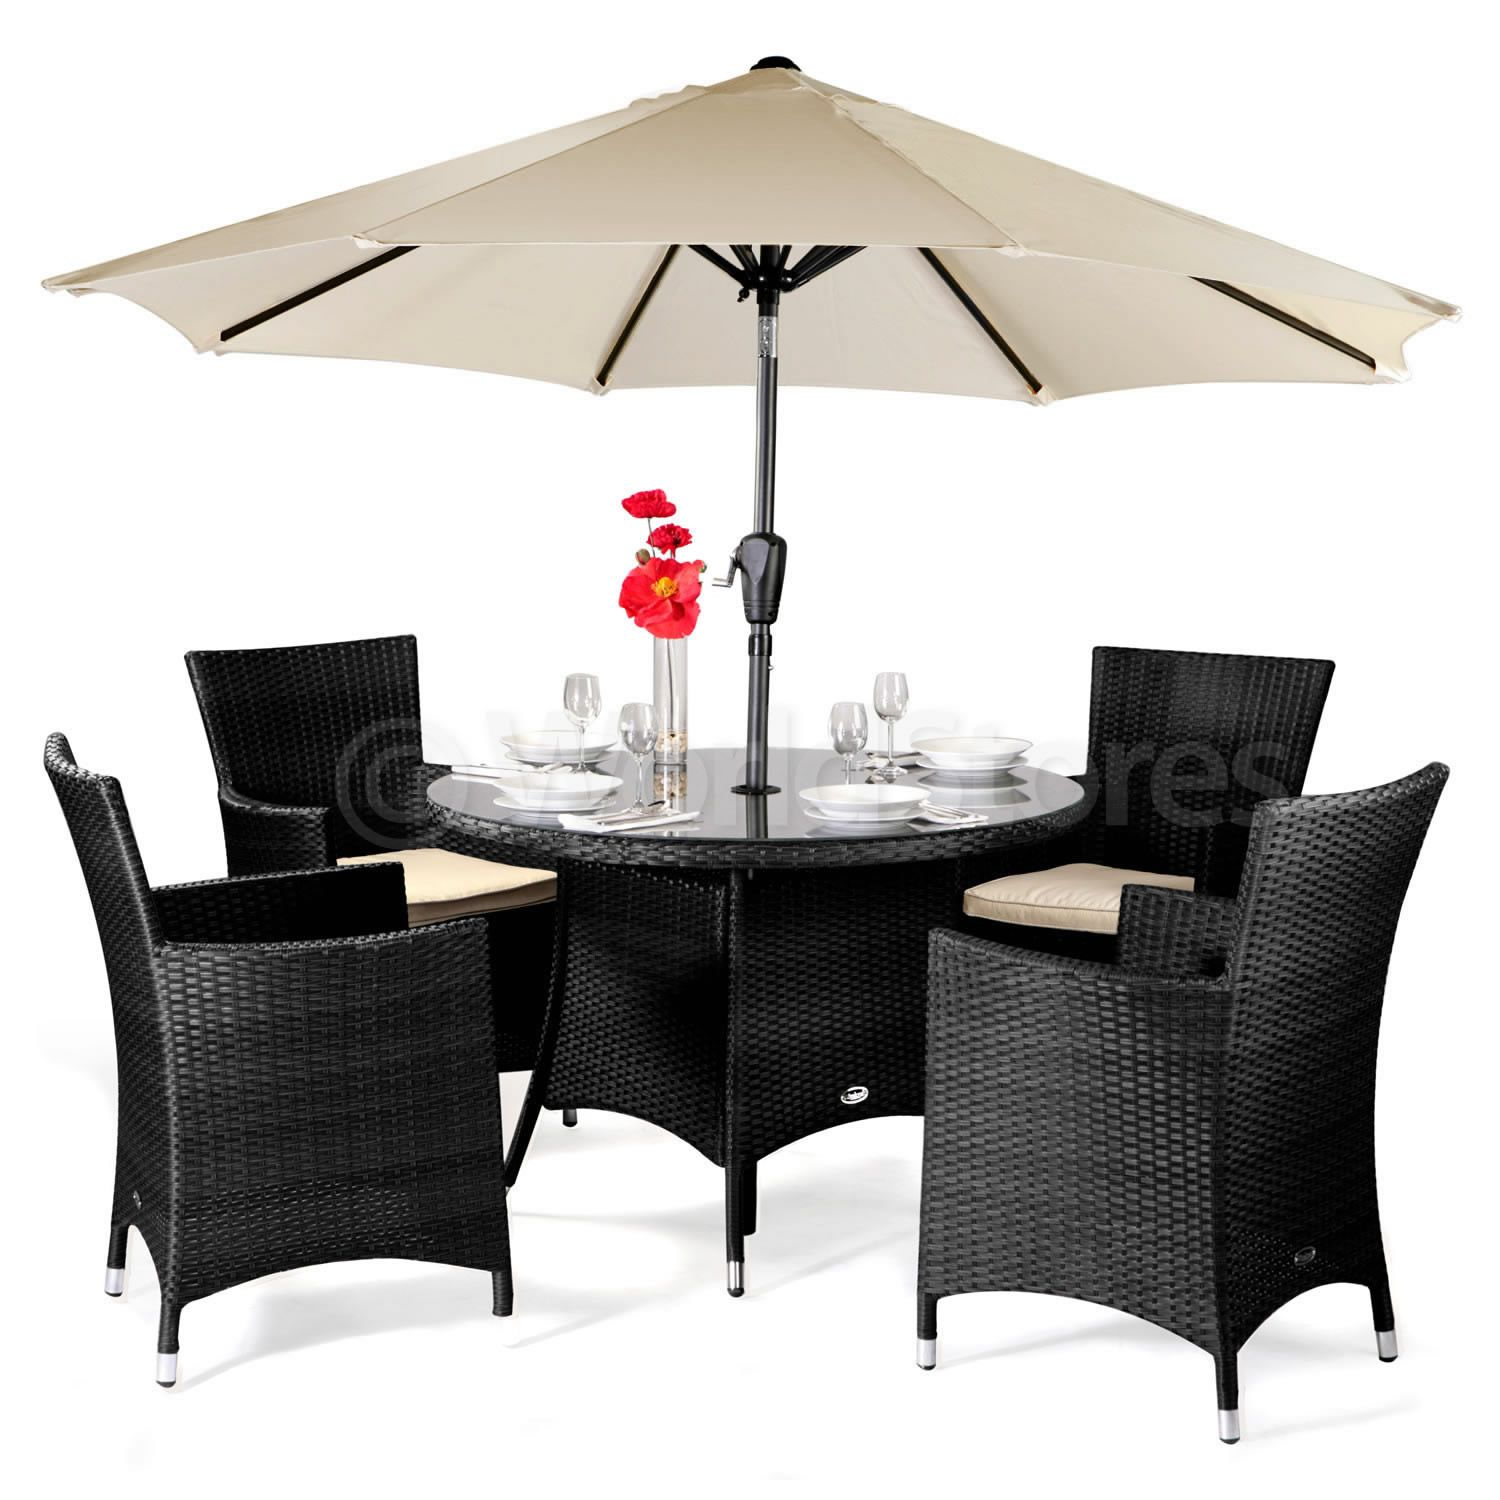 cannes rattan round 4 seater dining set garden furniture optional parasol patio in garden patio garden patio furniture furniture sets